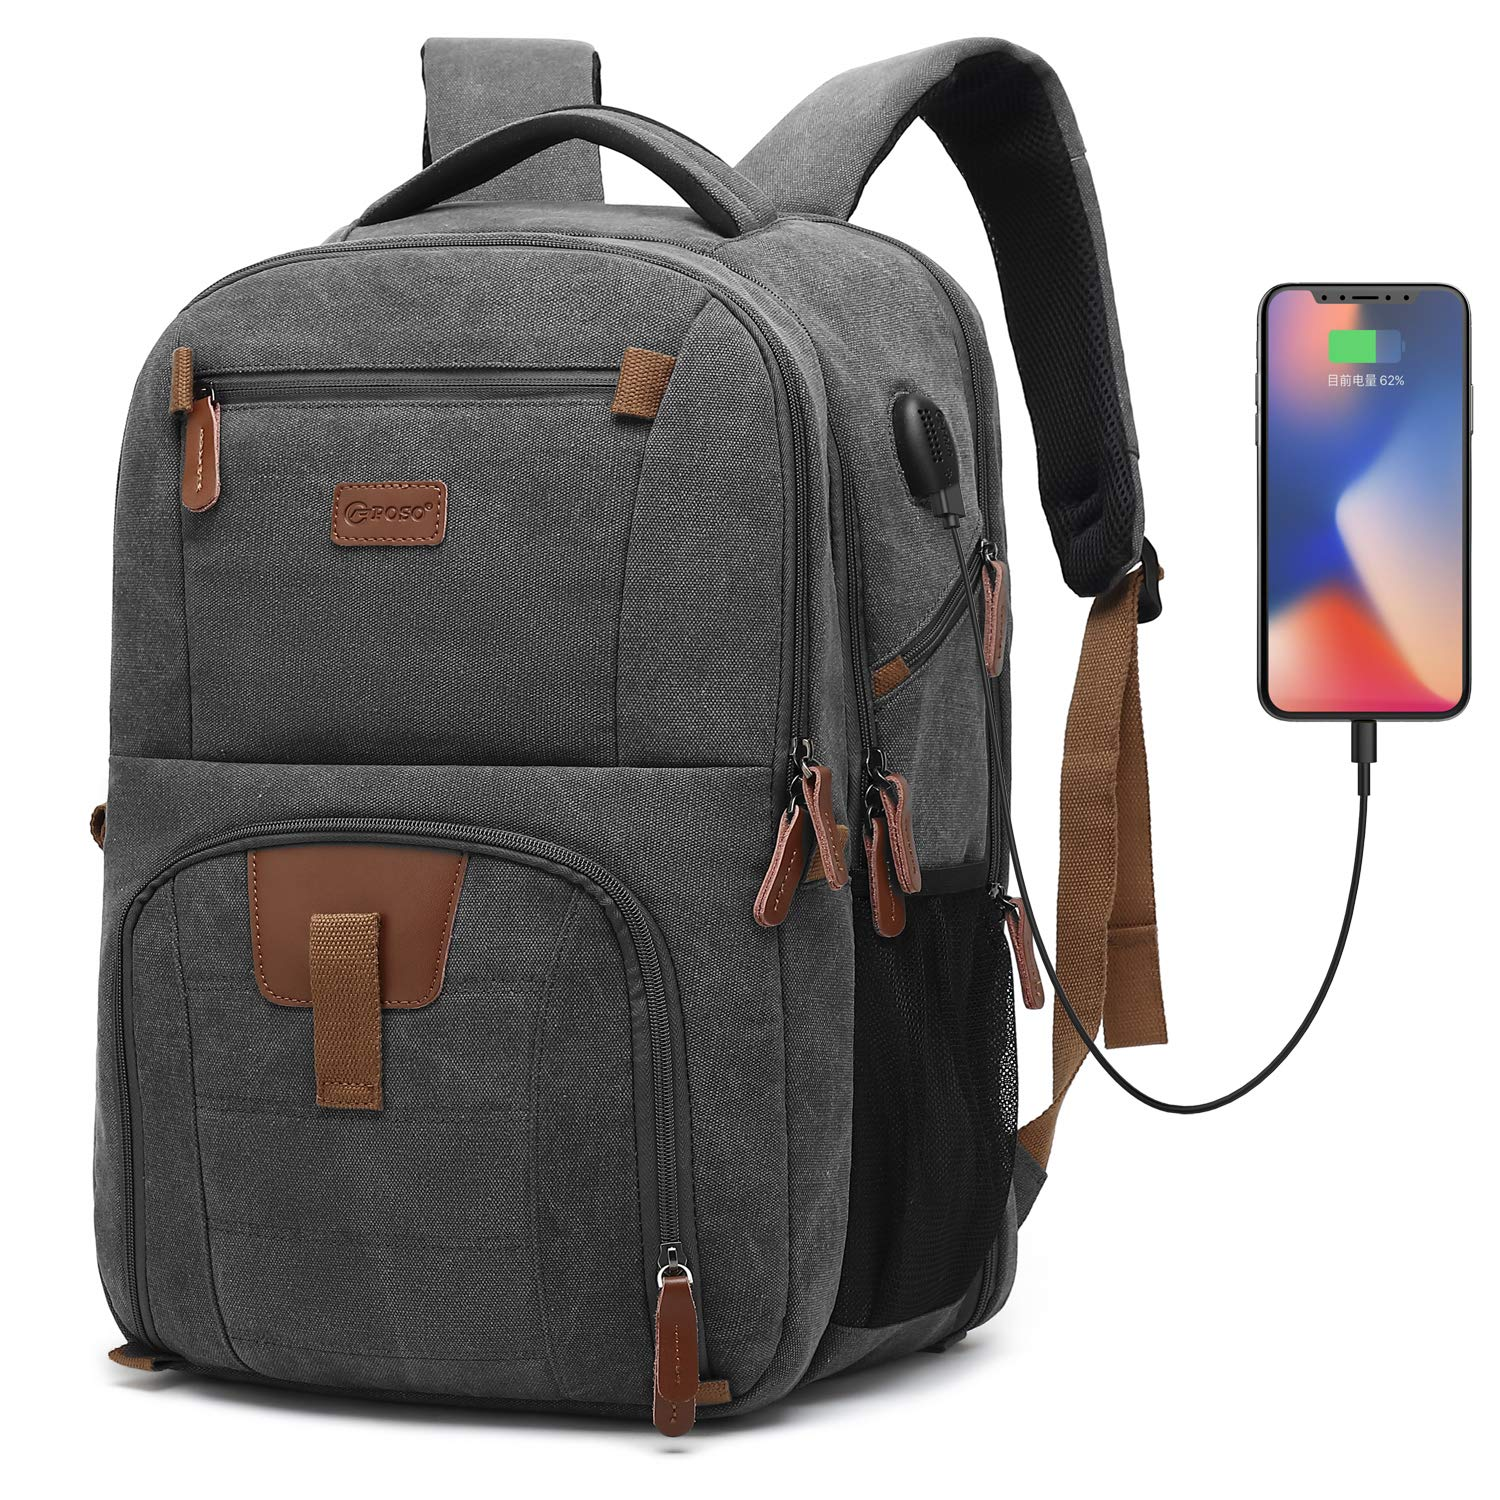 POSO Laptop Travel Backpack 17.3 Inch Computer Bag with USB Port Business Rucksack Hiking Knapsack Multi-Compartment Men Backpack for Dell Alienware Series/HP/Lenovo/Acer (Canvas Dark Grey) by POSO